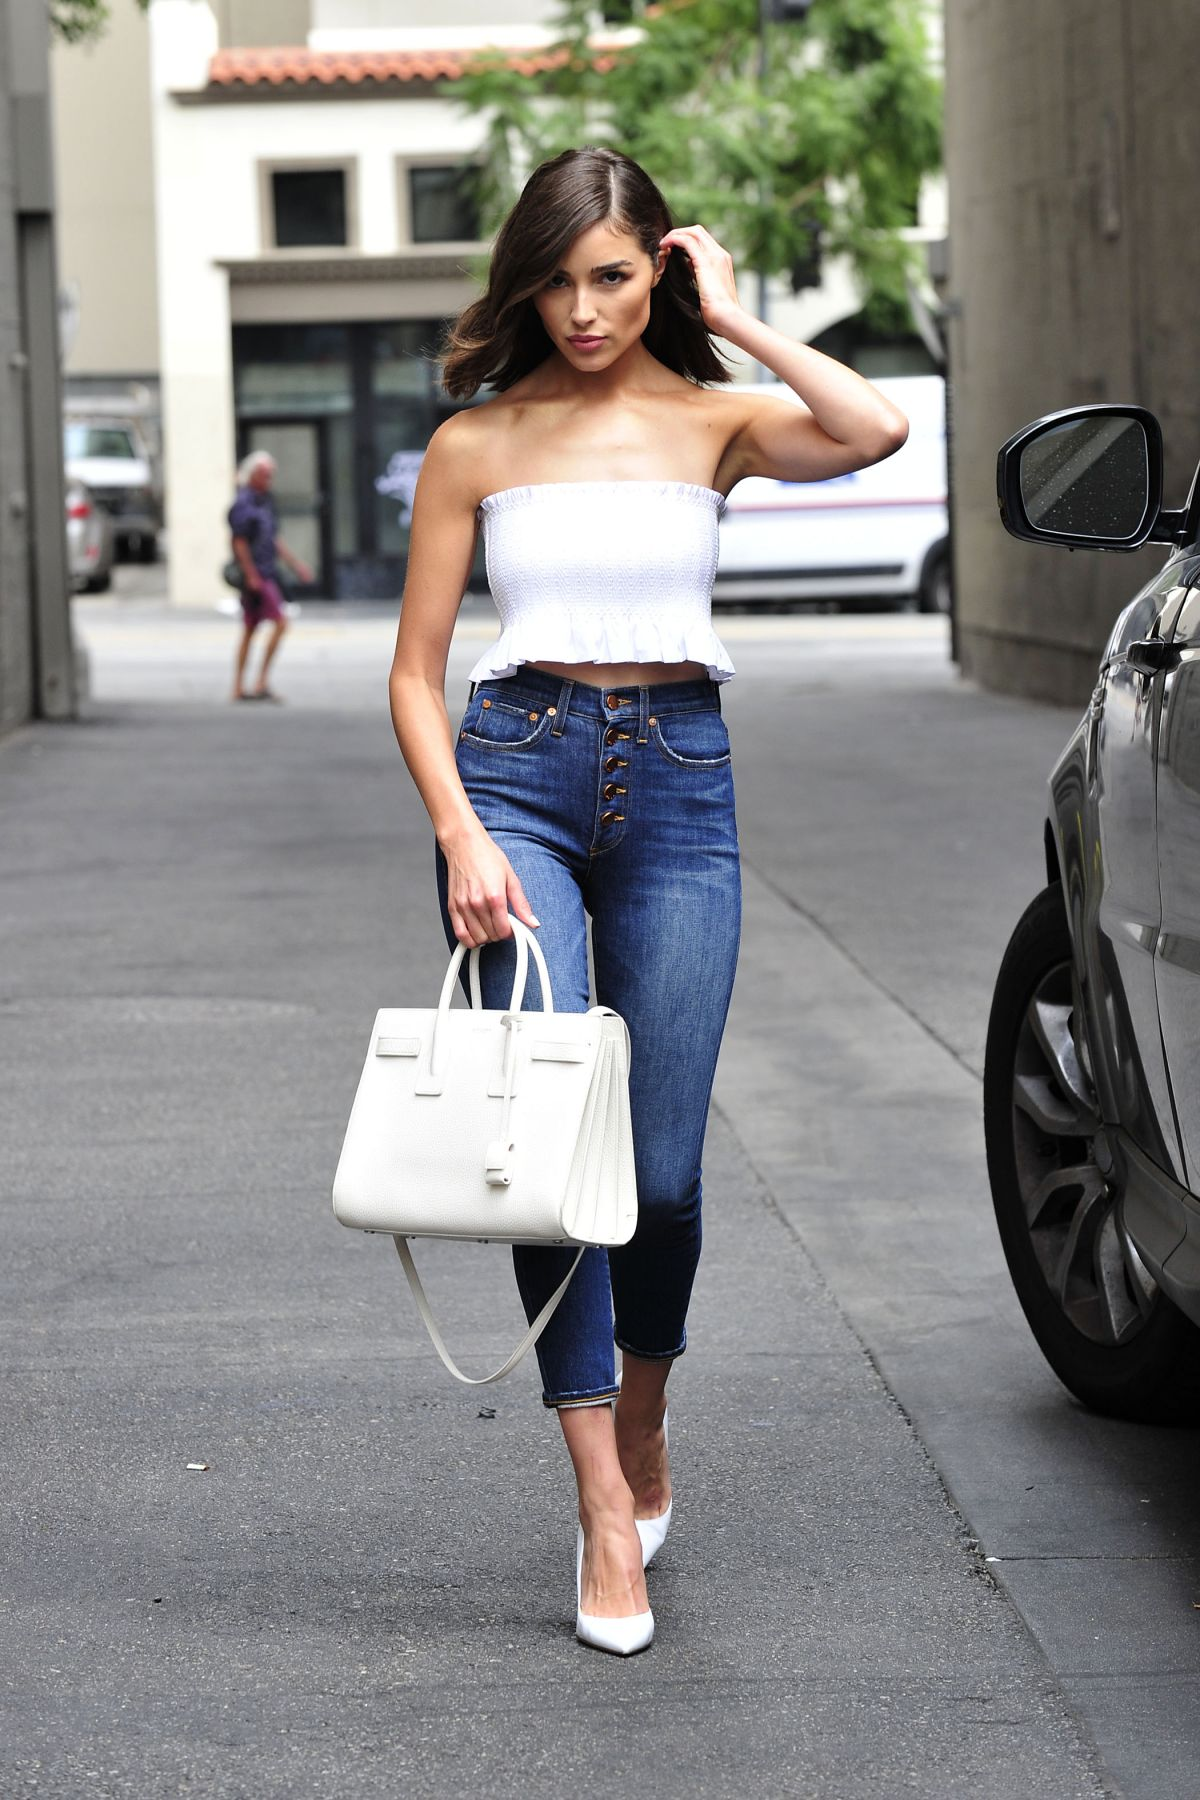 Olivia Culpo In Tube Top And Tight Jeans Out In Los -9414